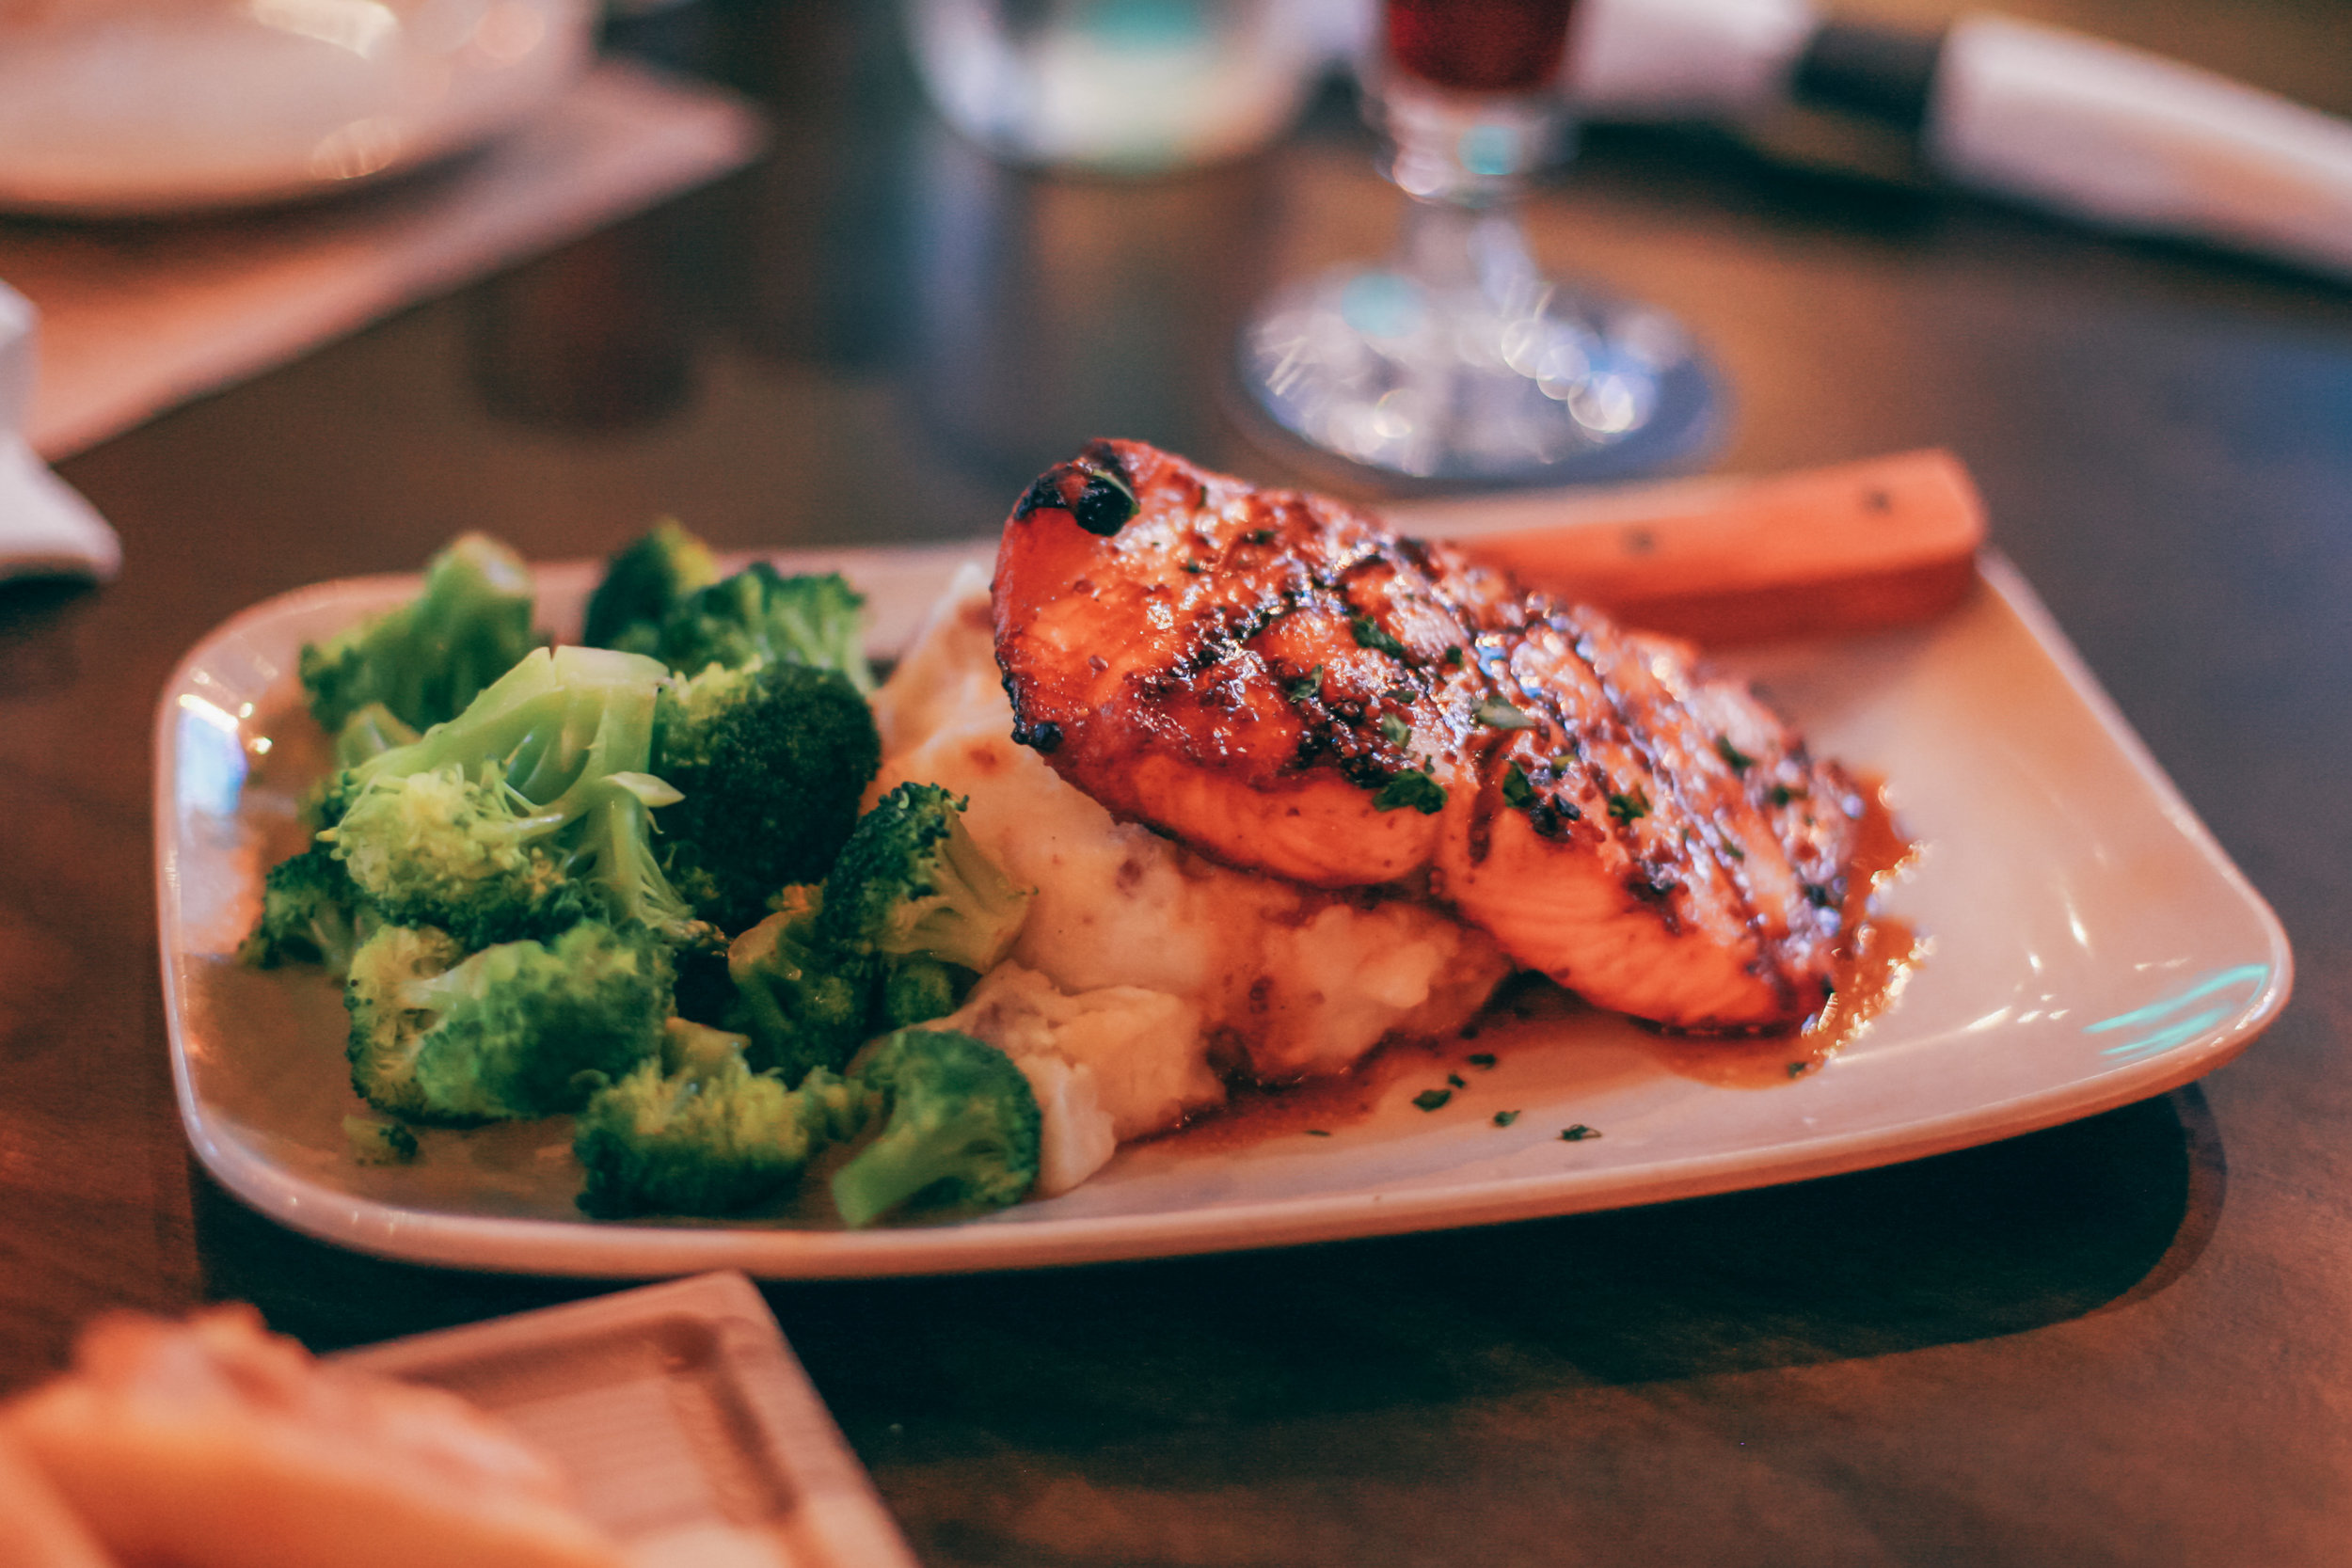 IPA Salmon:Fresh Grilled Salmon, brushed with our Spicy IPA Glaze, Red skin mashed potatoes & steamed broccoli.